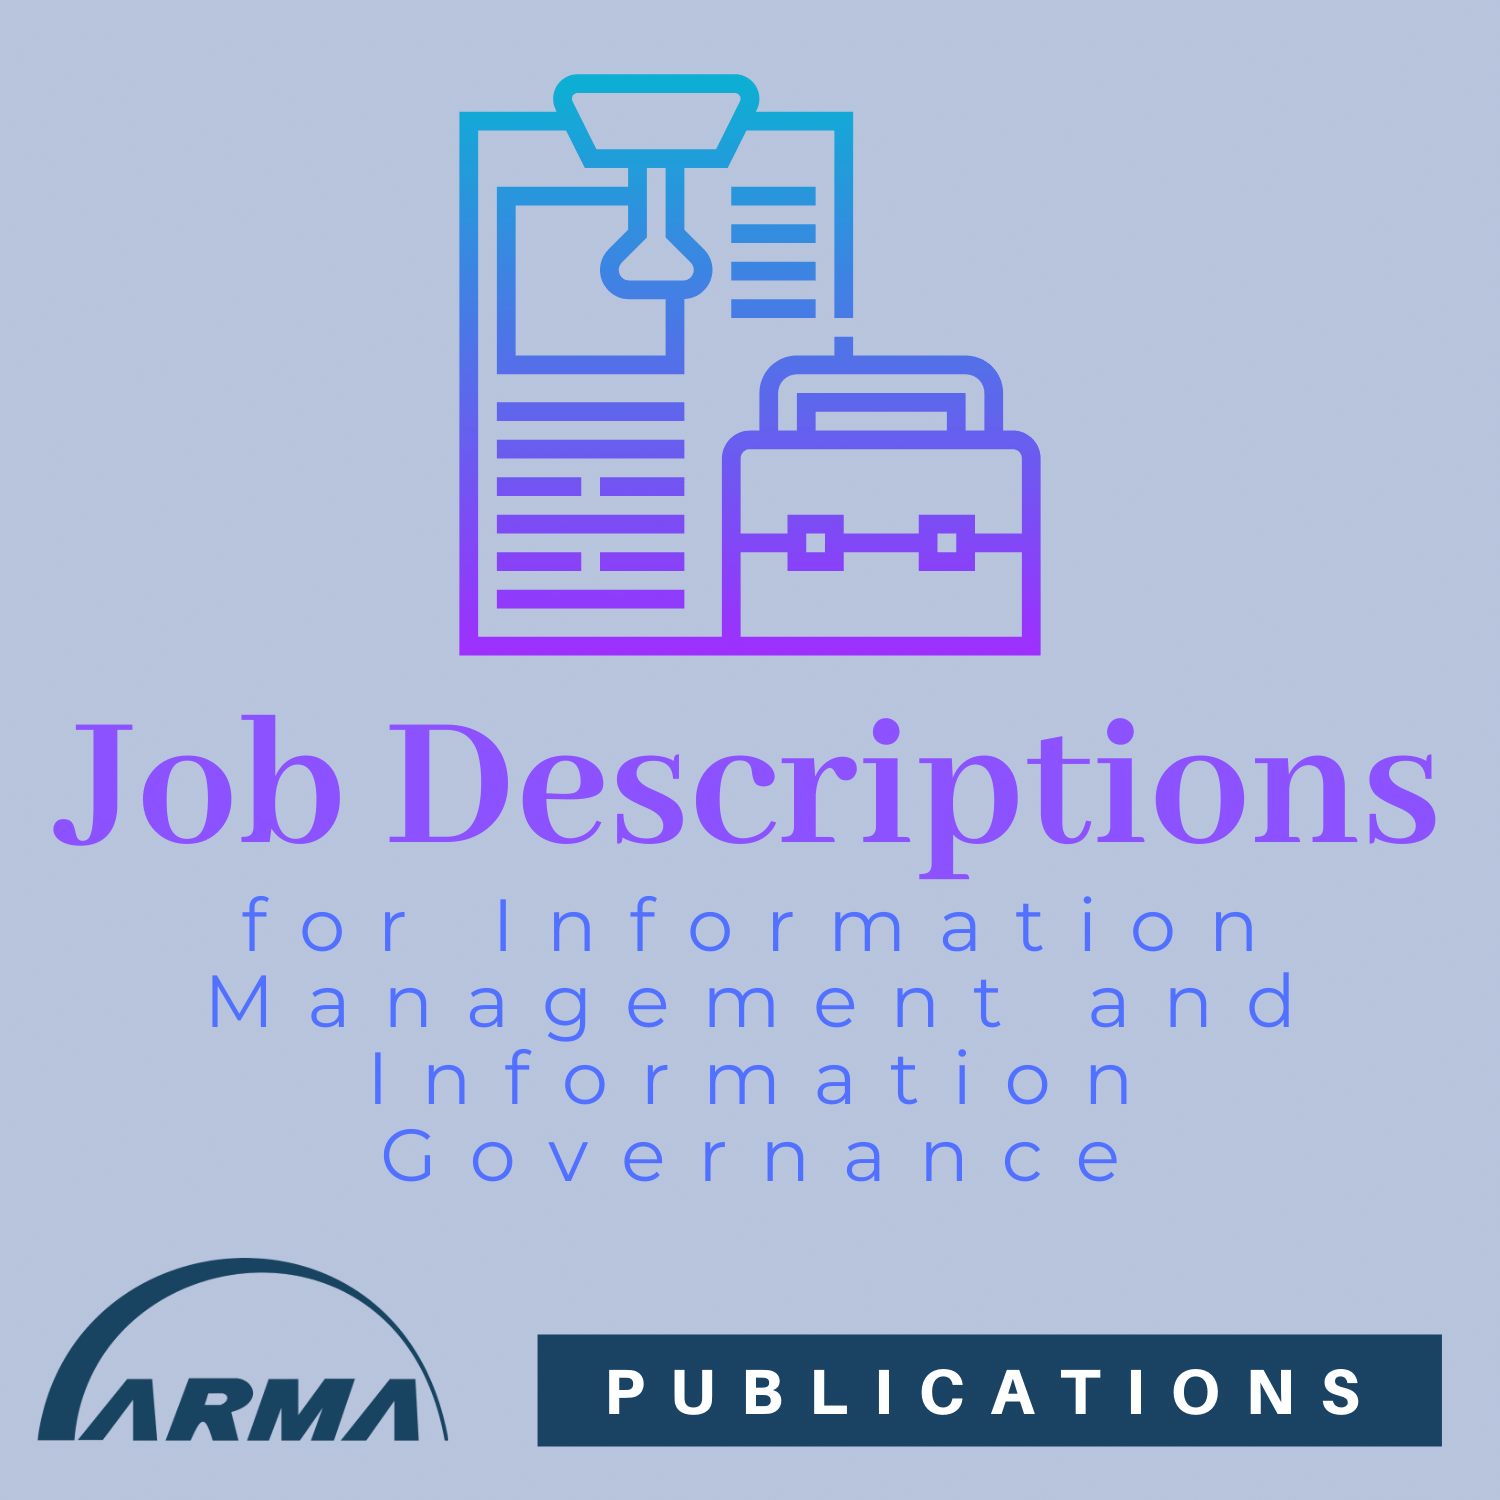 Job Descriptions for Information Management and Information Governance